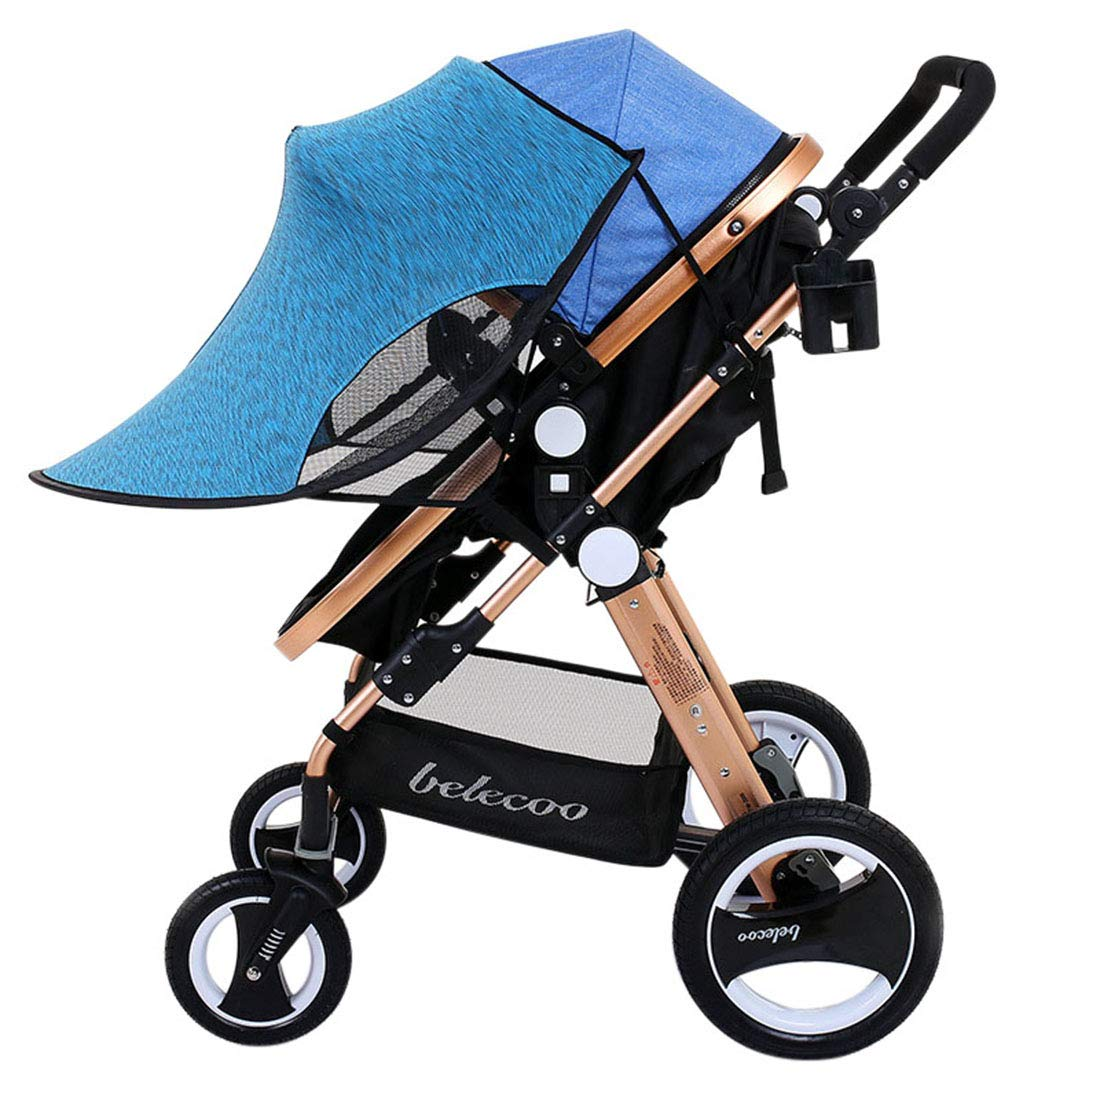 Bverionant Baby Stroller Sun and Rain Shade Awning Anti-UV Umbrella Canopy Universal Fit for Seat(Blue) by Bverionant